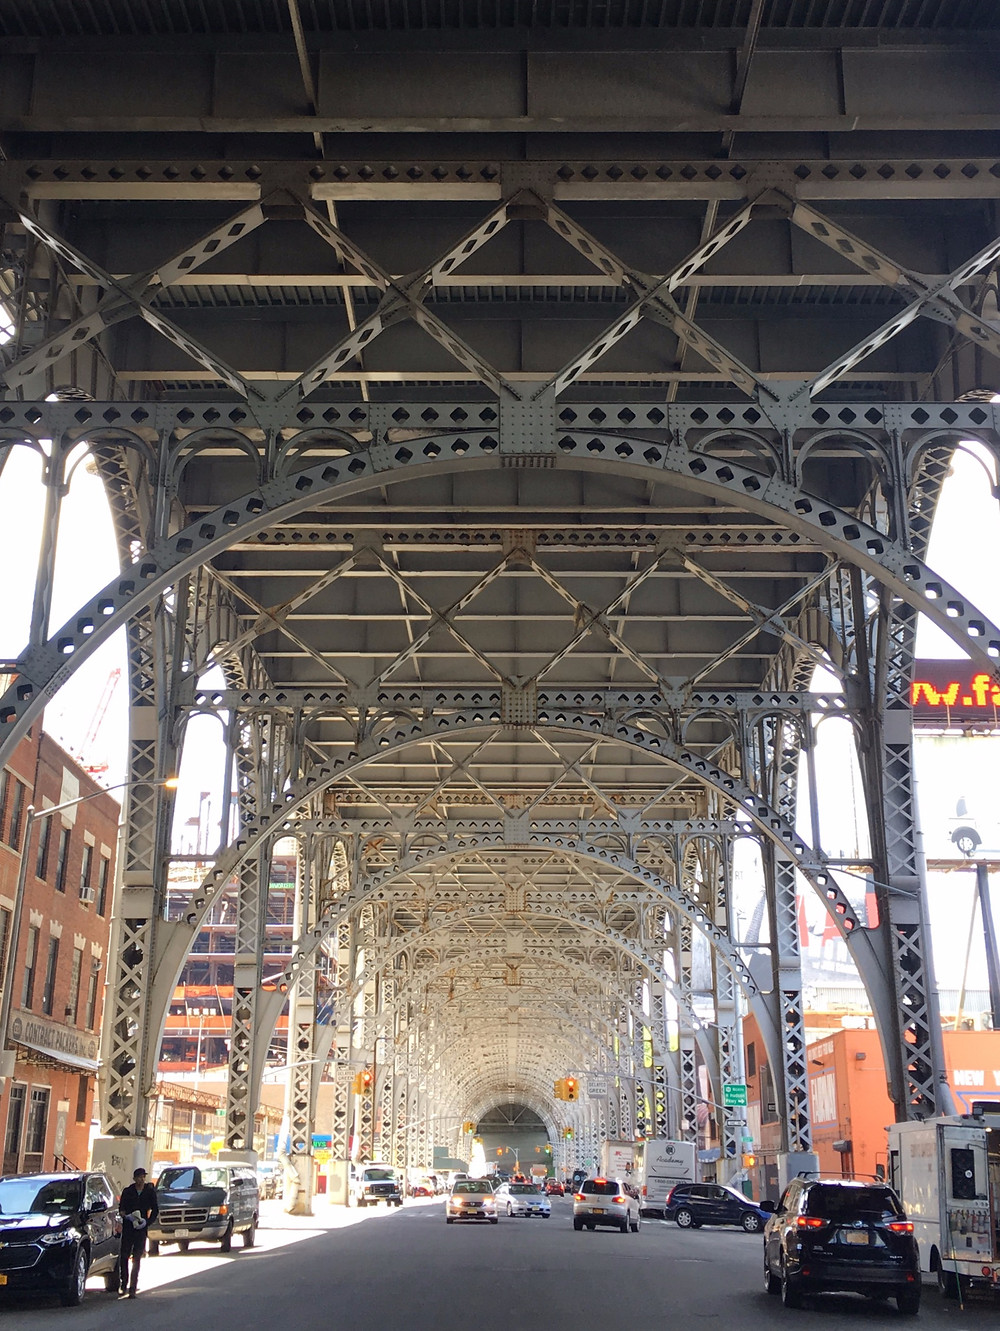 Under the viaduct in Harlem, one of the most Instagrammed spots in Harlem